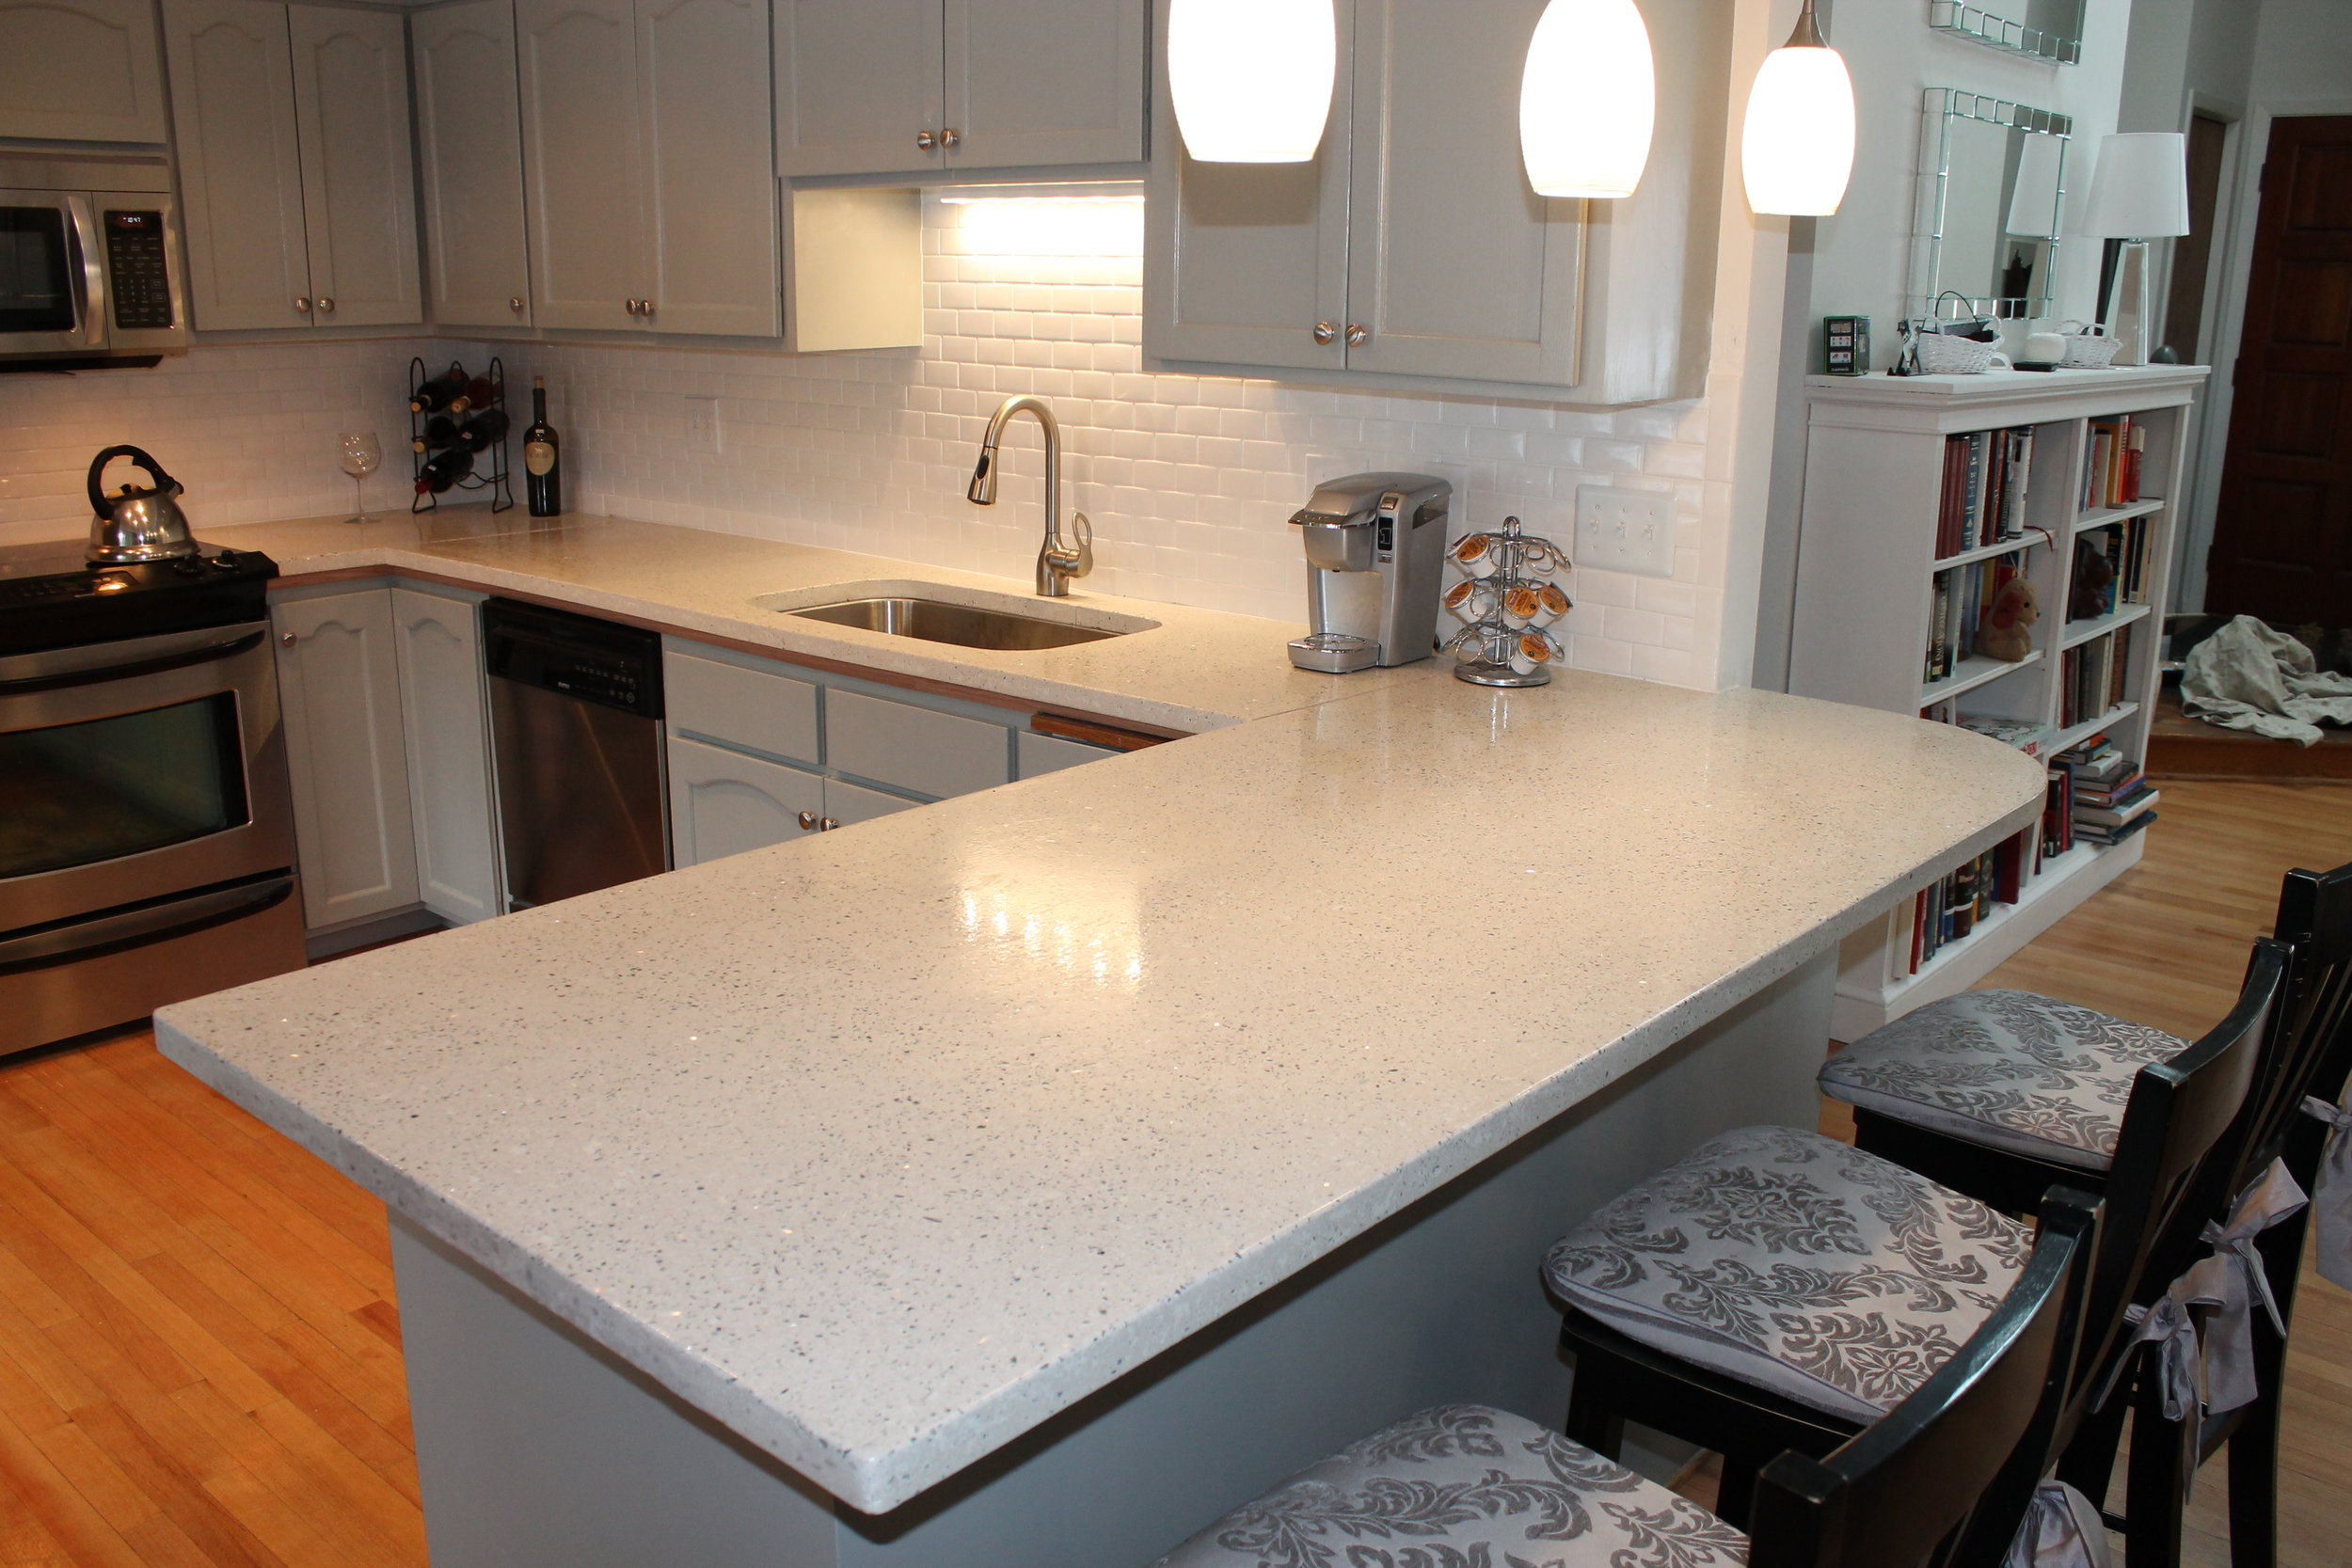 Concrete countertops with recycled glass aggregate